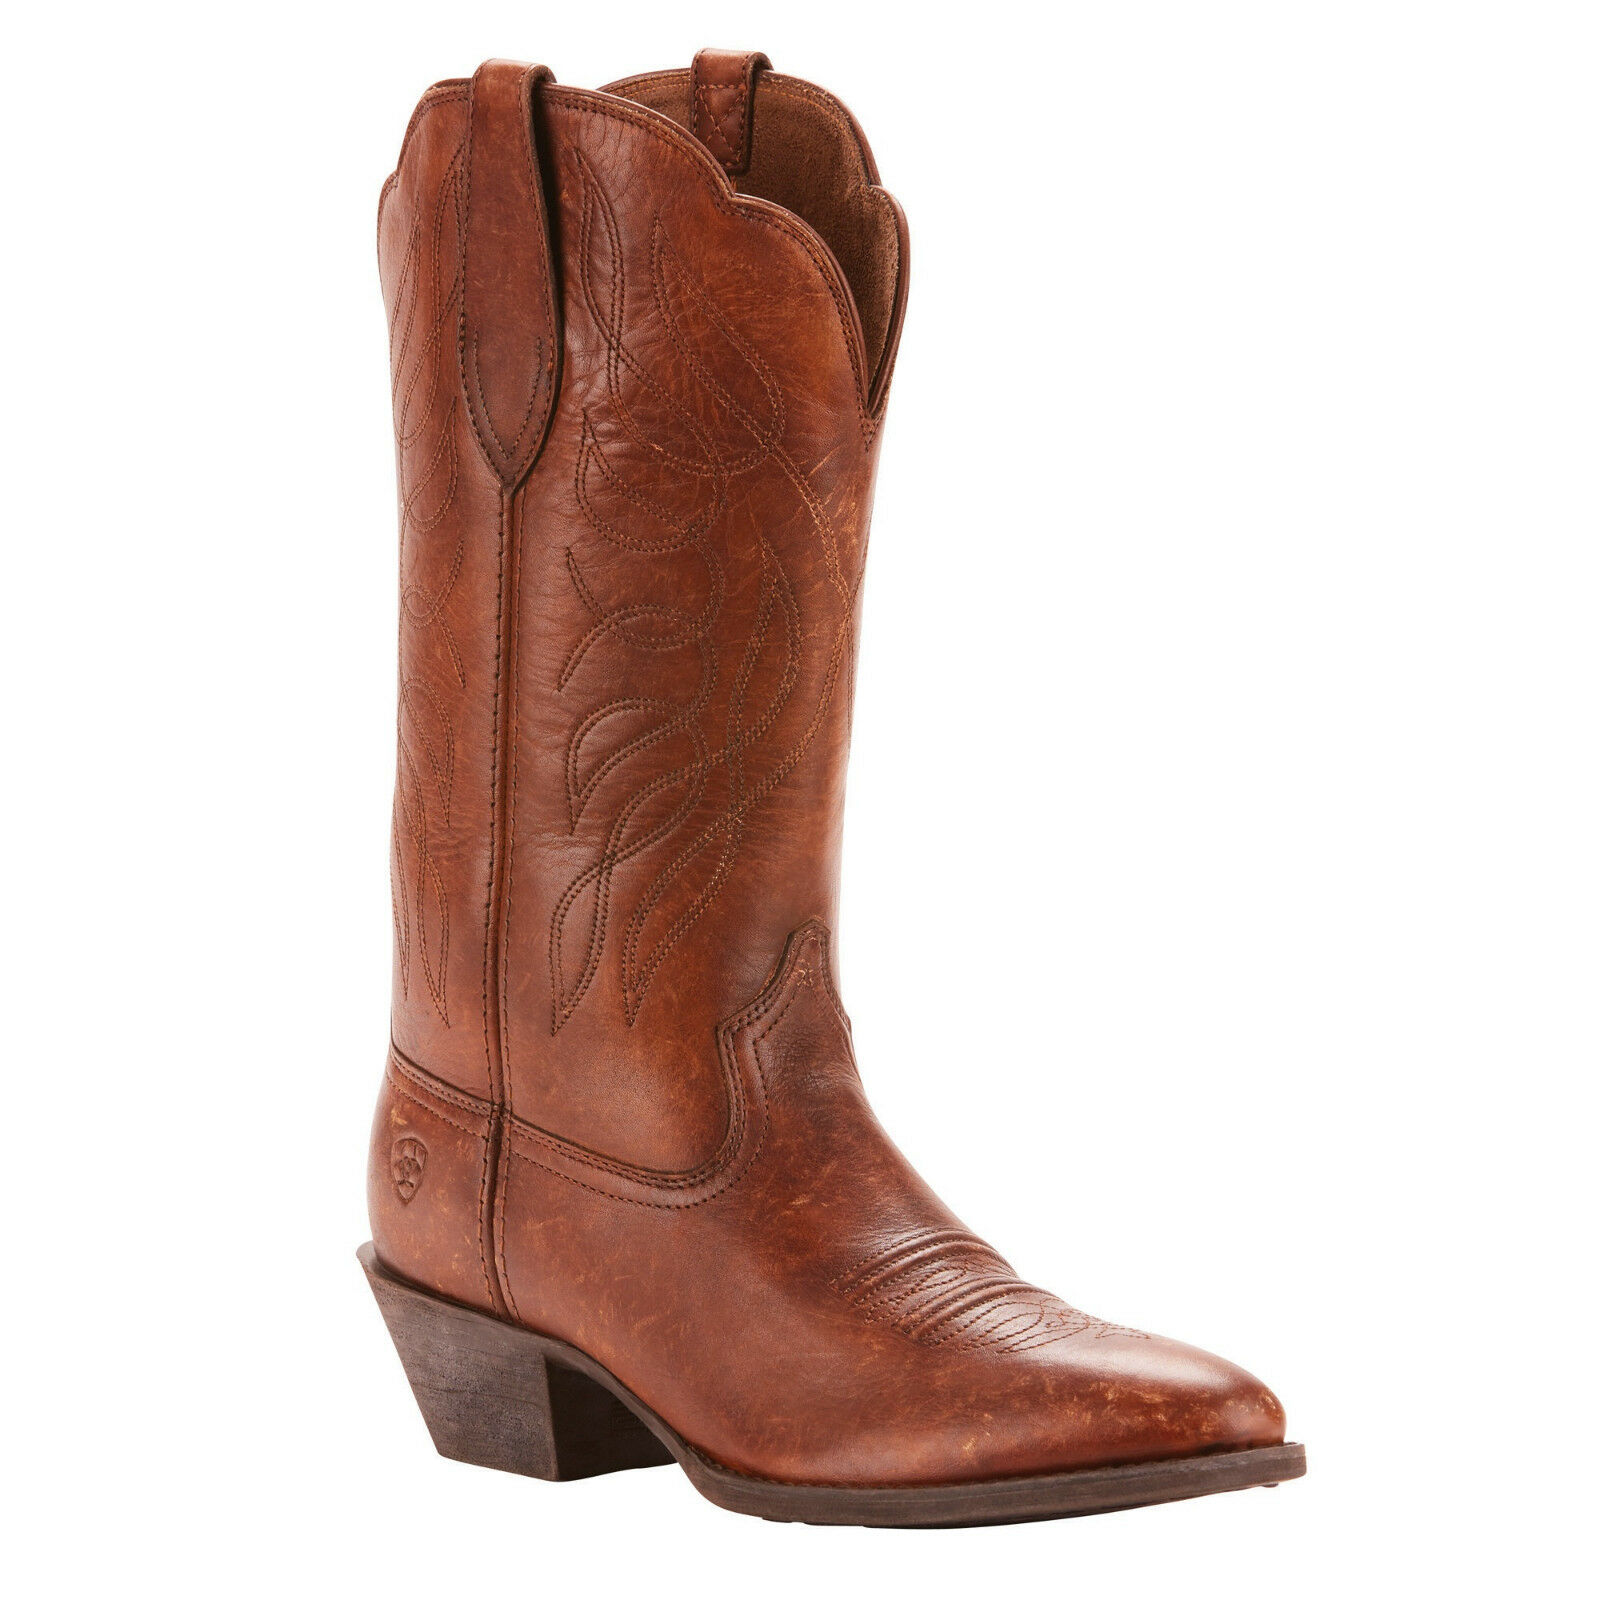 distribuzione globale Ariat® Ladies Heritage Western R R R Toe Distressed Marrone stivali 10025121  best-seller